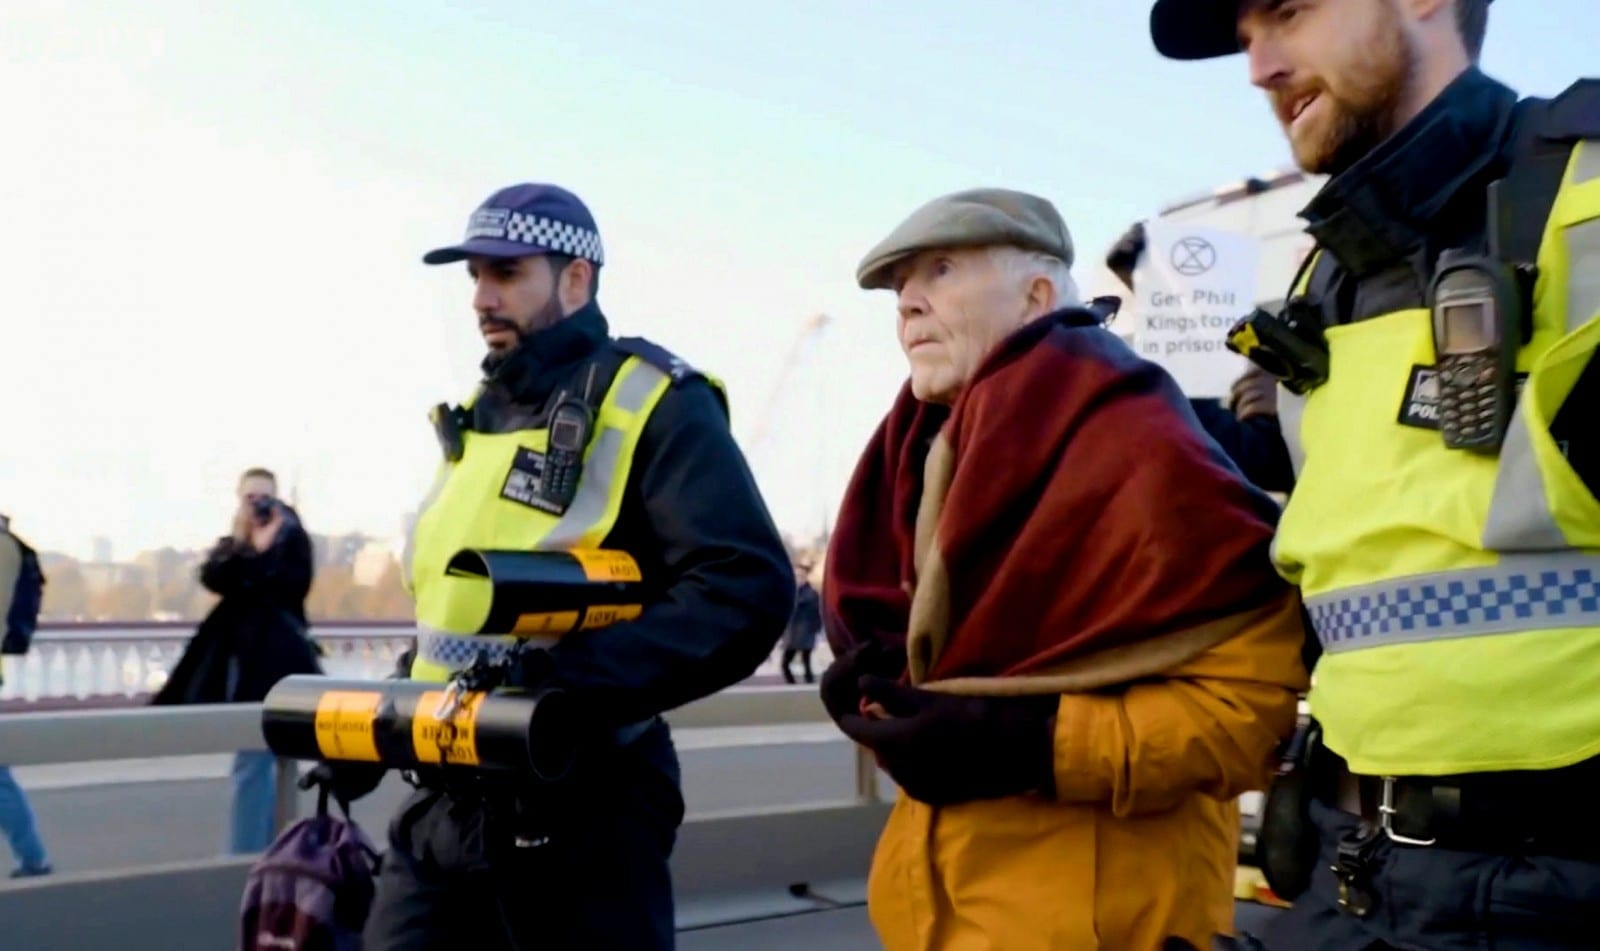 Meet The Grandfather Who's Been Arrested A Staggering Thirteen Times In The Name Of Climate Change - And Counting